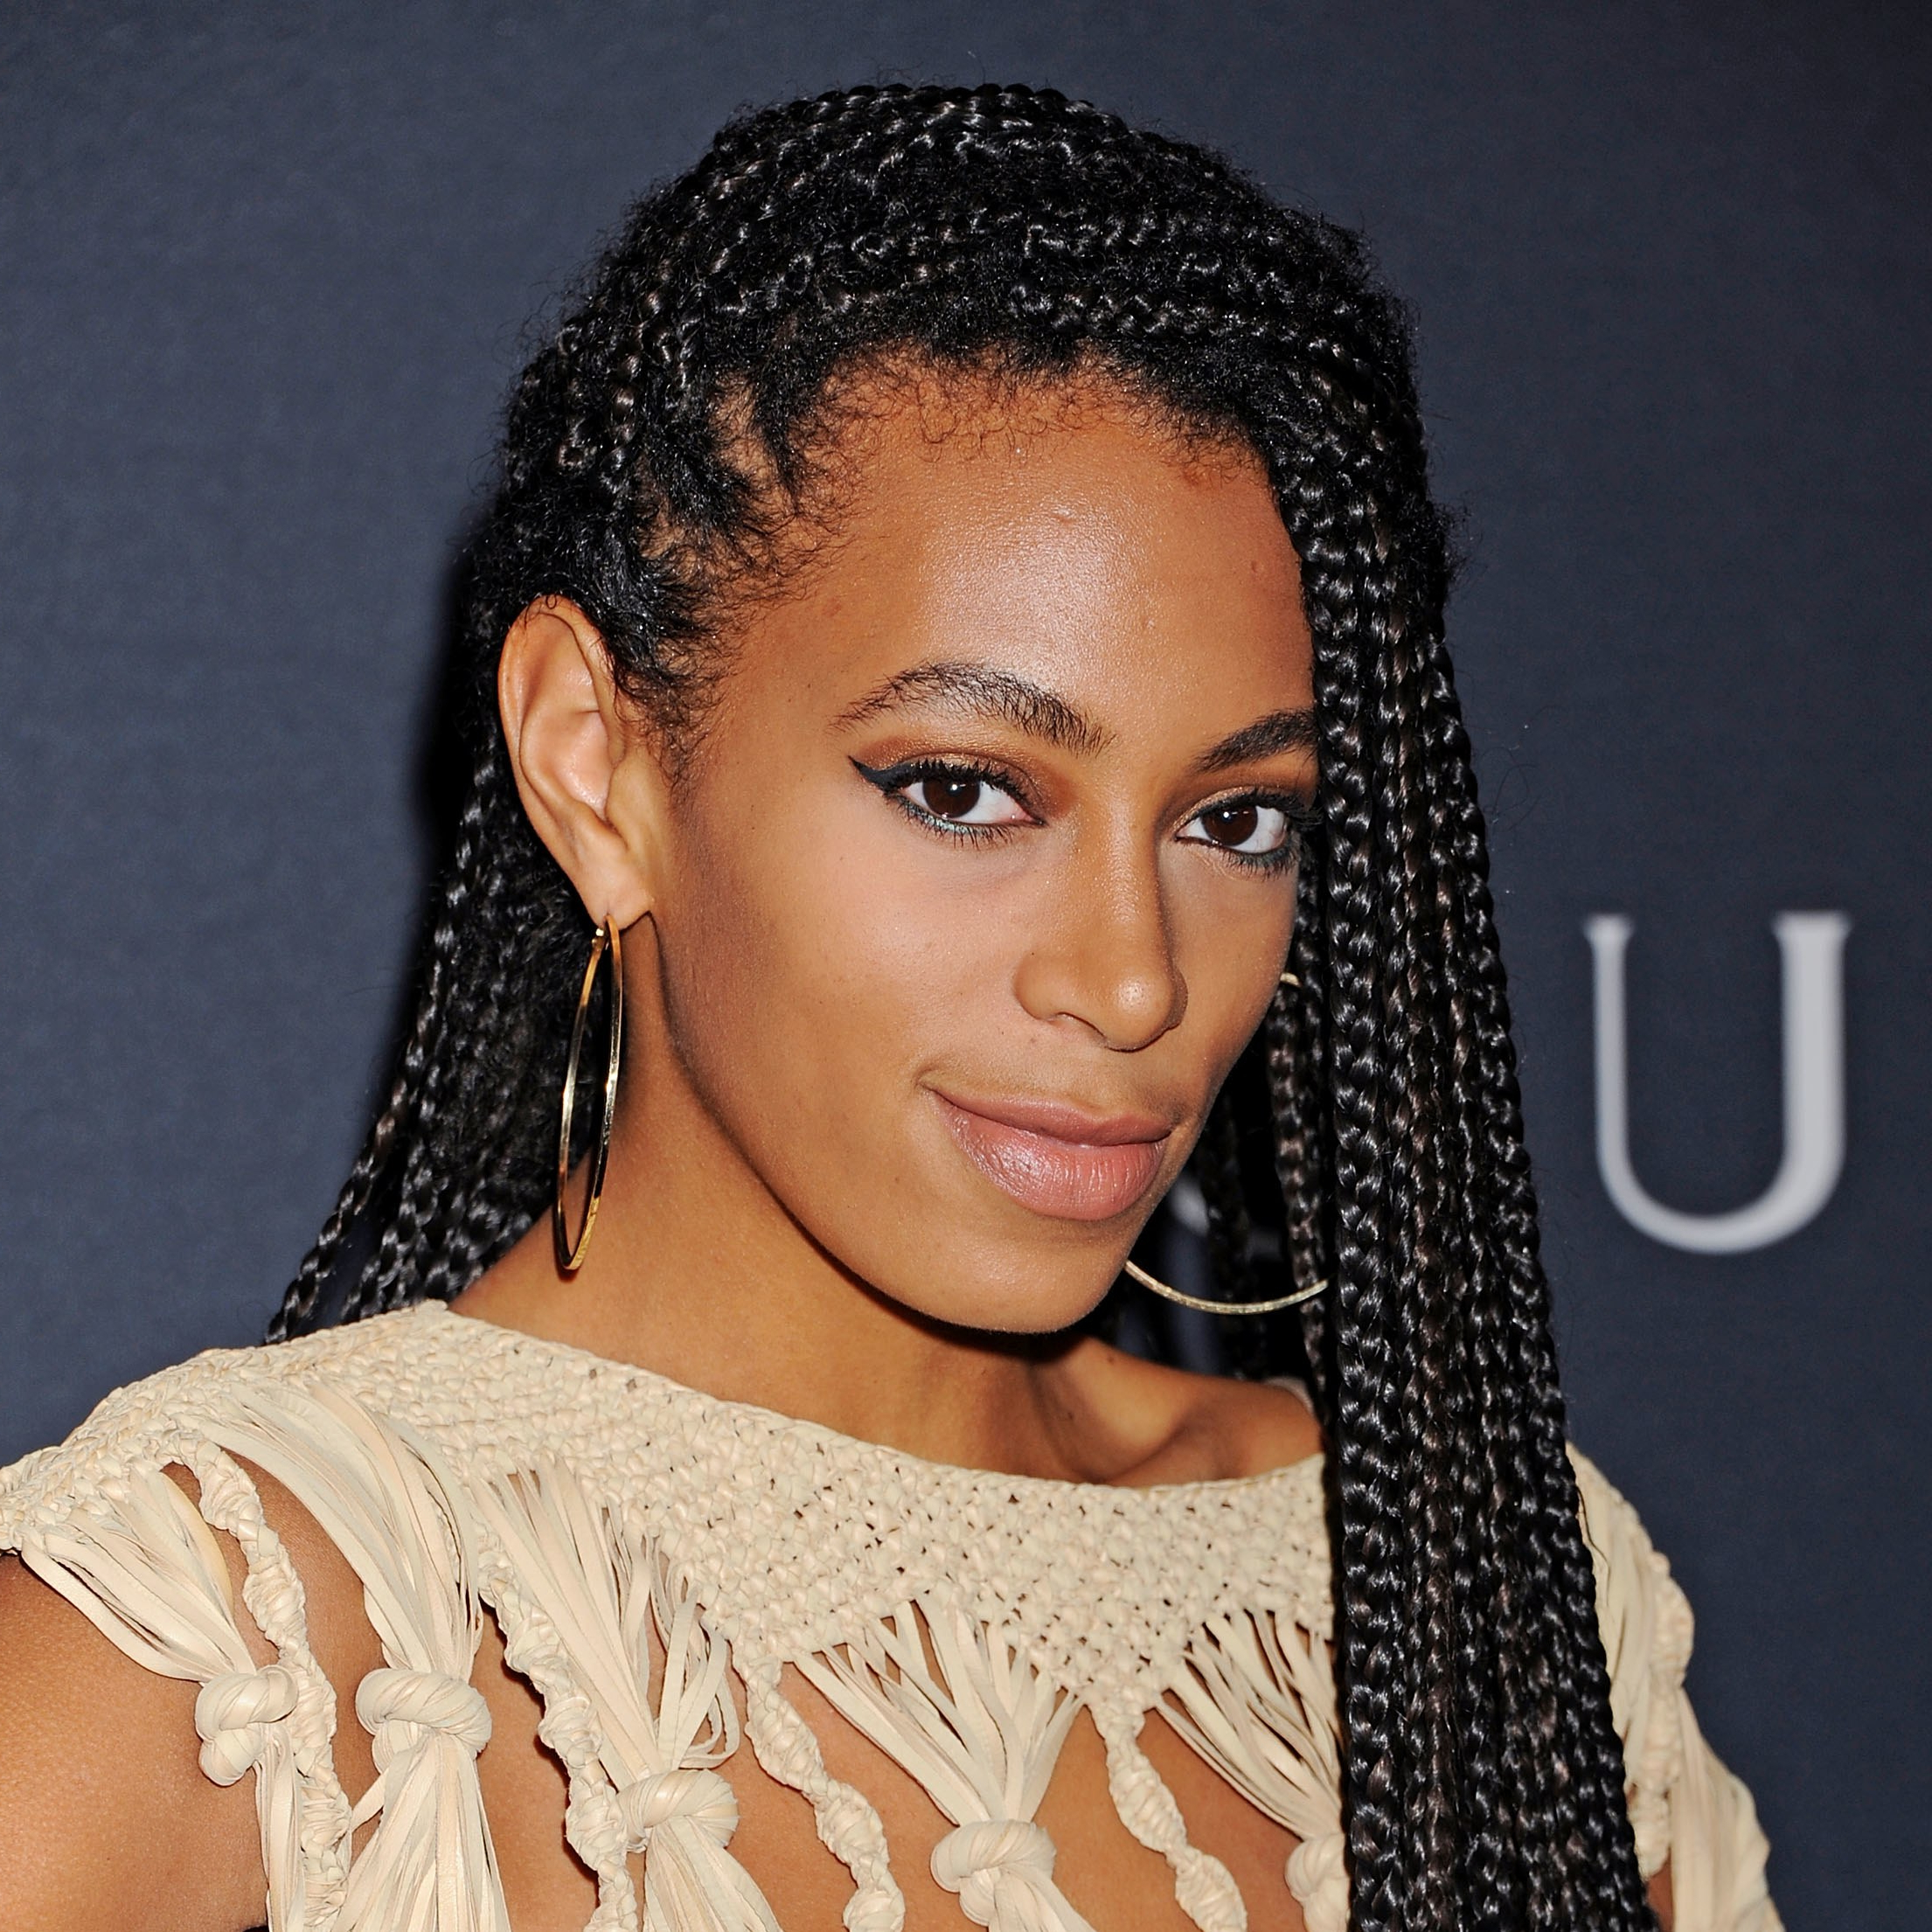 Well Liked Cornrows Tight Bun Under Braid Hairstyles With 14 Things Girls With Box Braids Can Relate To (View 13 of 20)